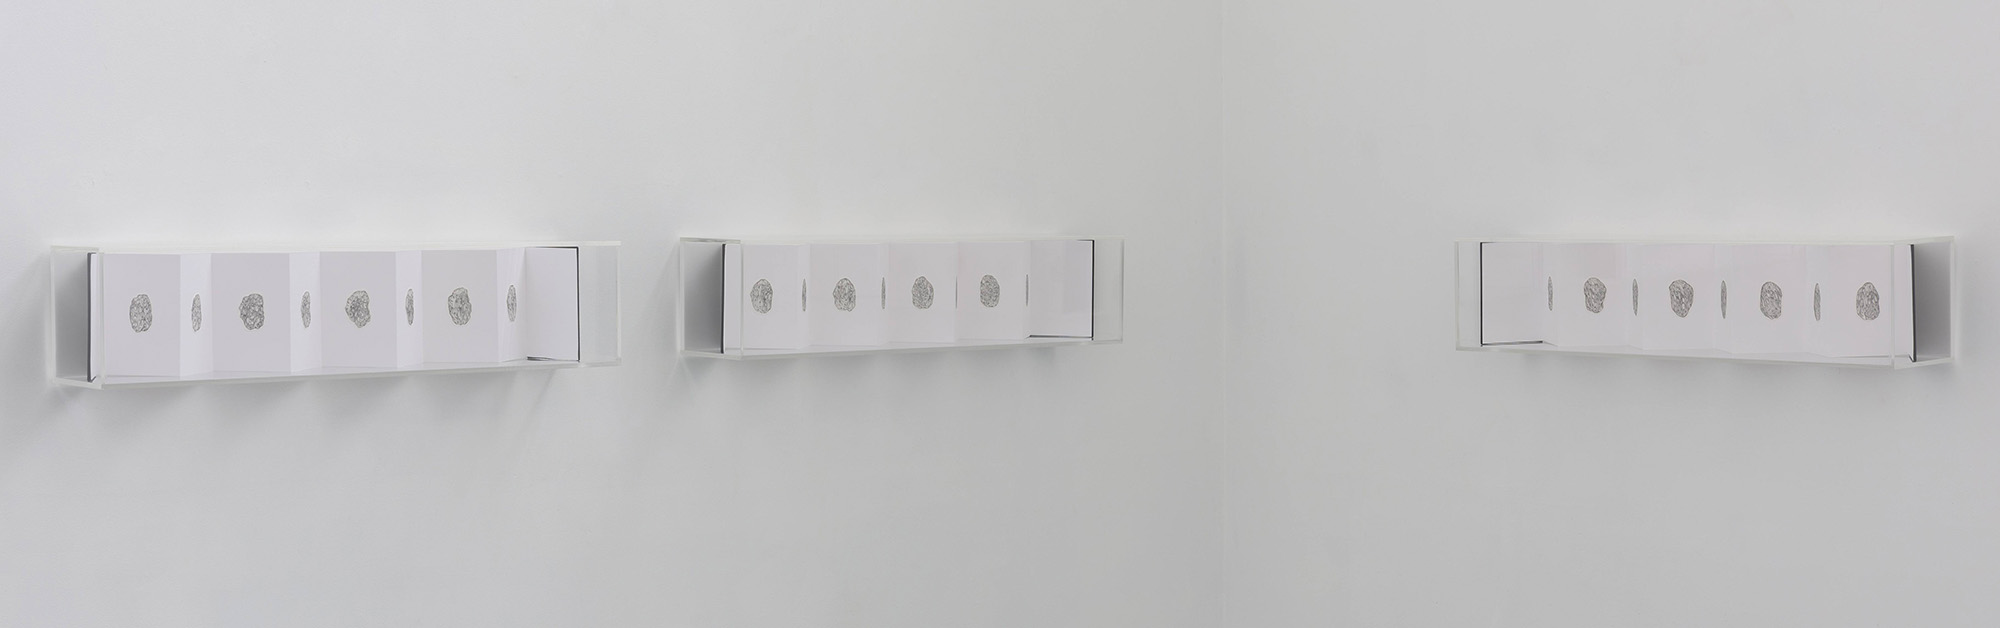 Helga Groves, Leap seconds, 2015, Installation view